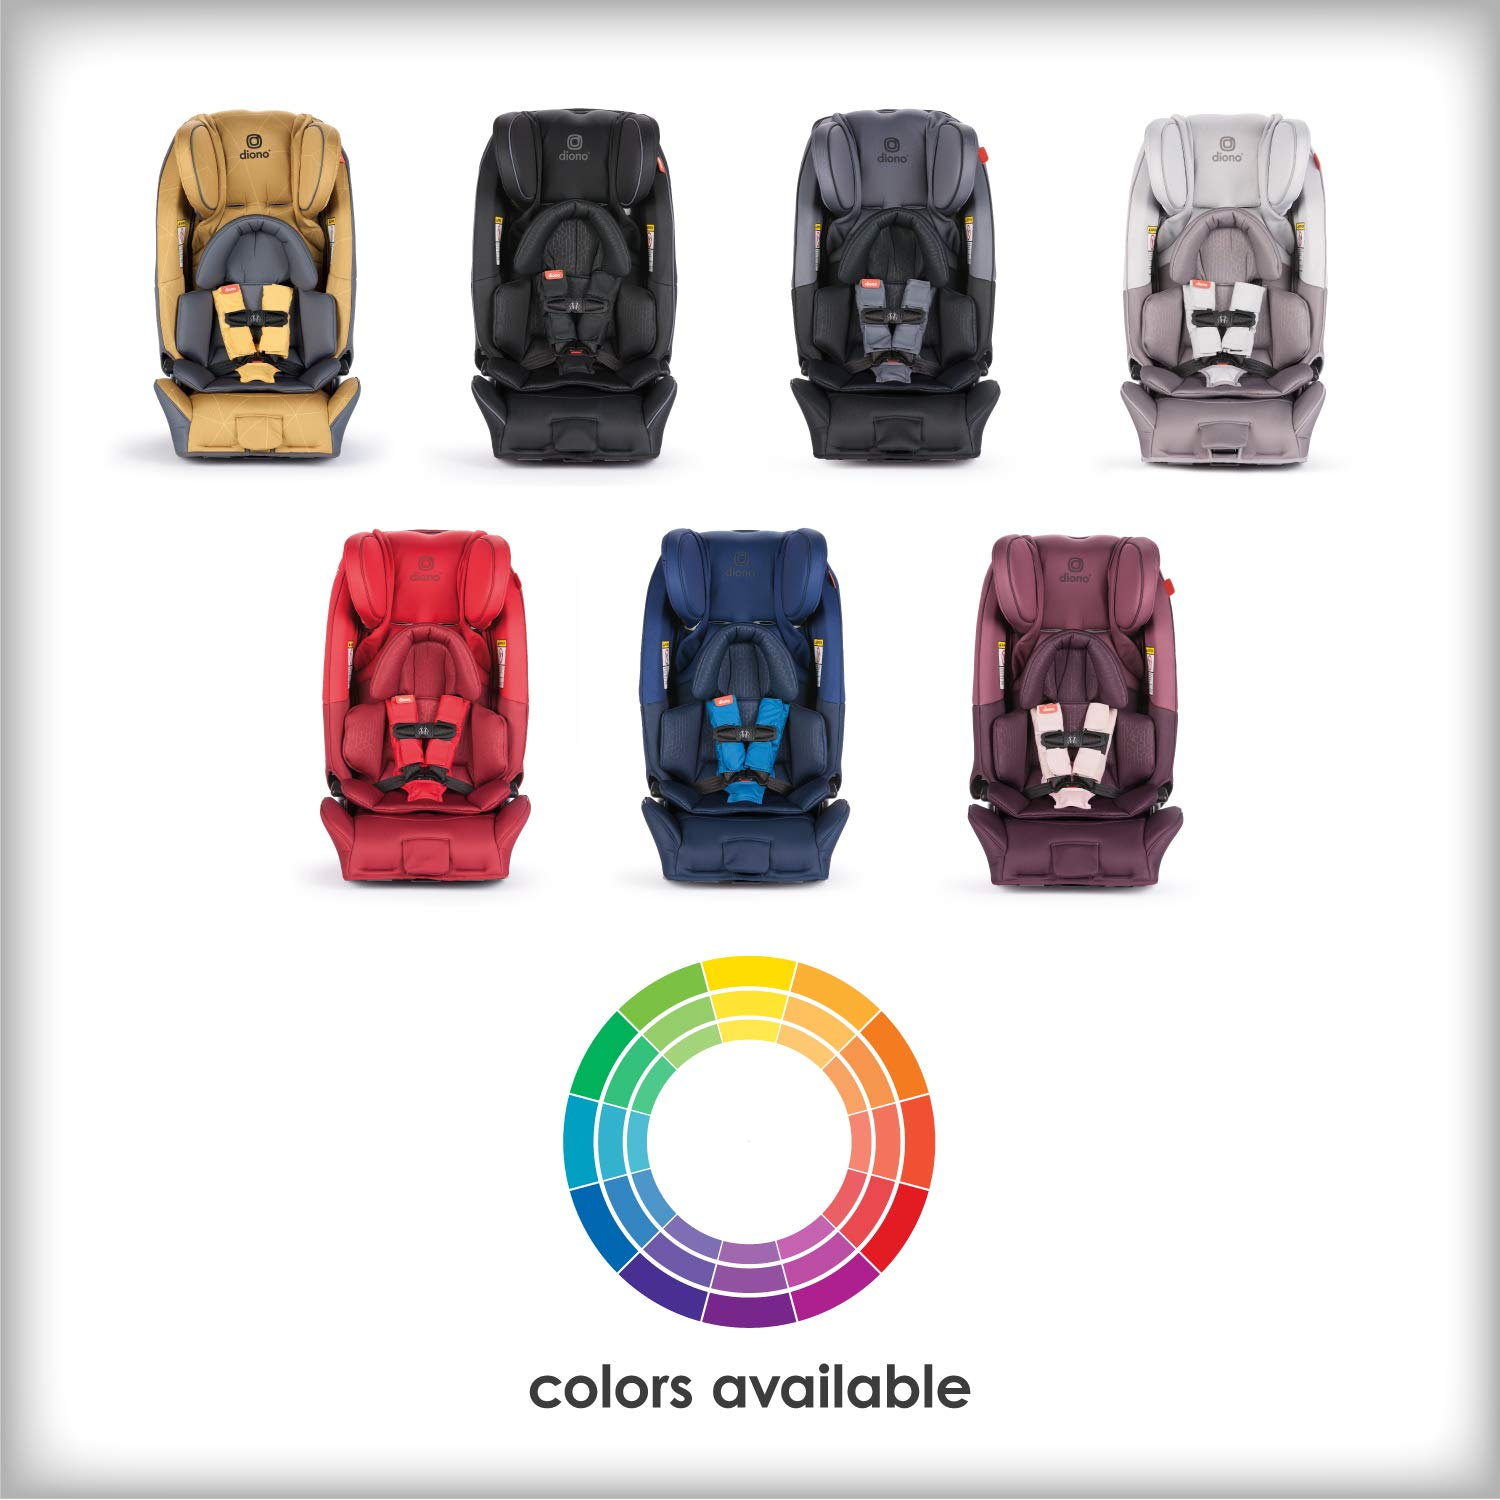 Diono Radian 3RXT All-in-One Convertible Car Seat - Extended Rear-Facing 5-45 Pounds, Forward-Facing to 65 Pounds, Booster to 120 Pounds - The Original 3 Across, Black by Diono (Image #8)